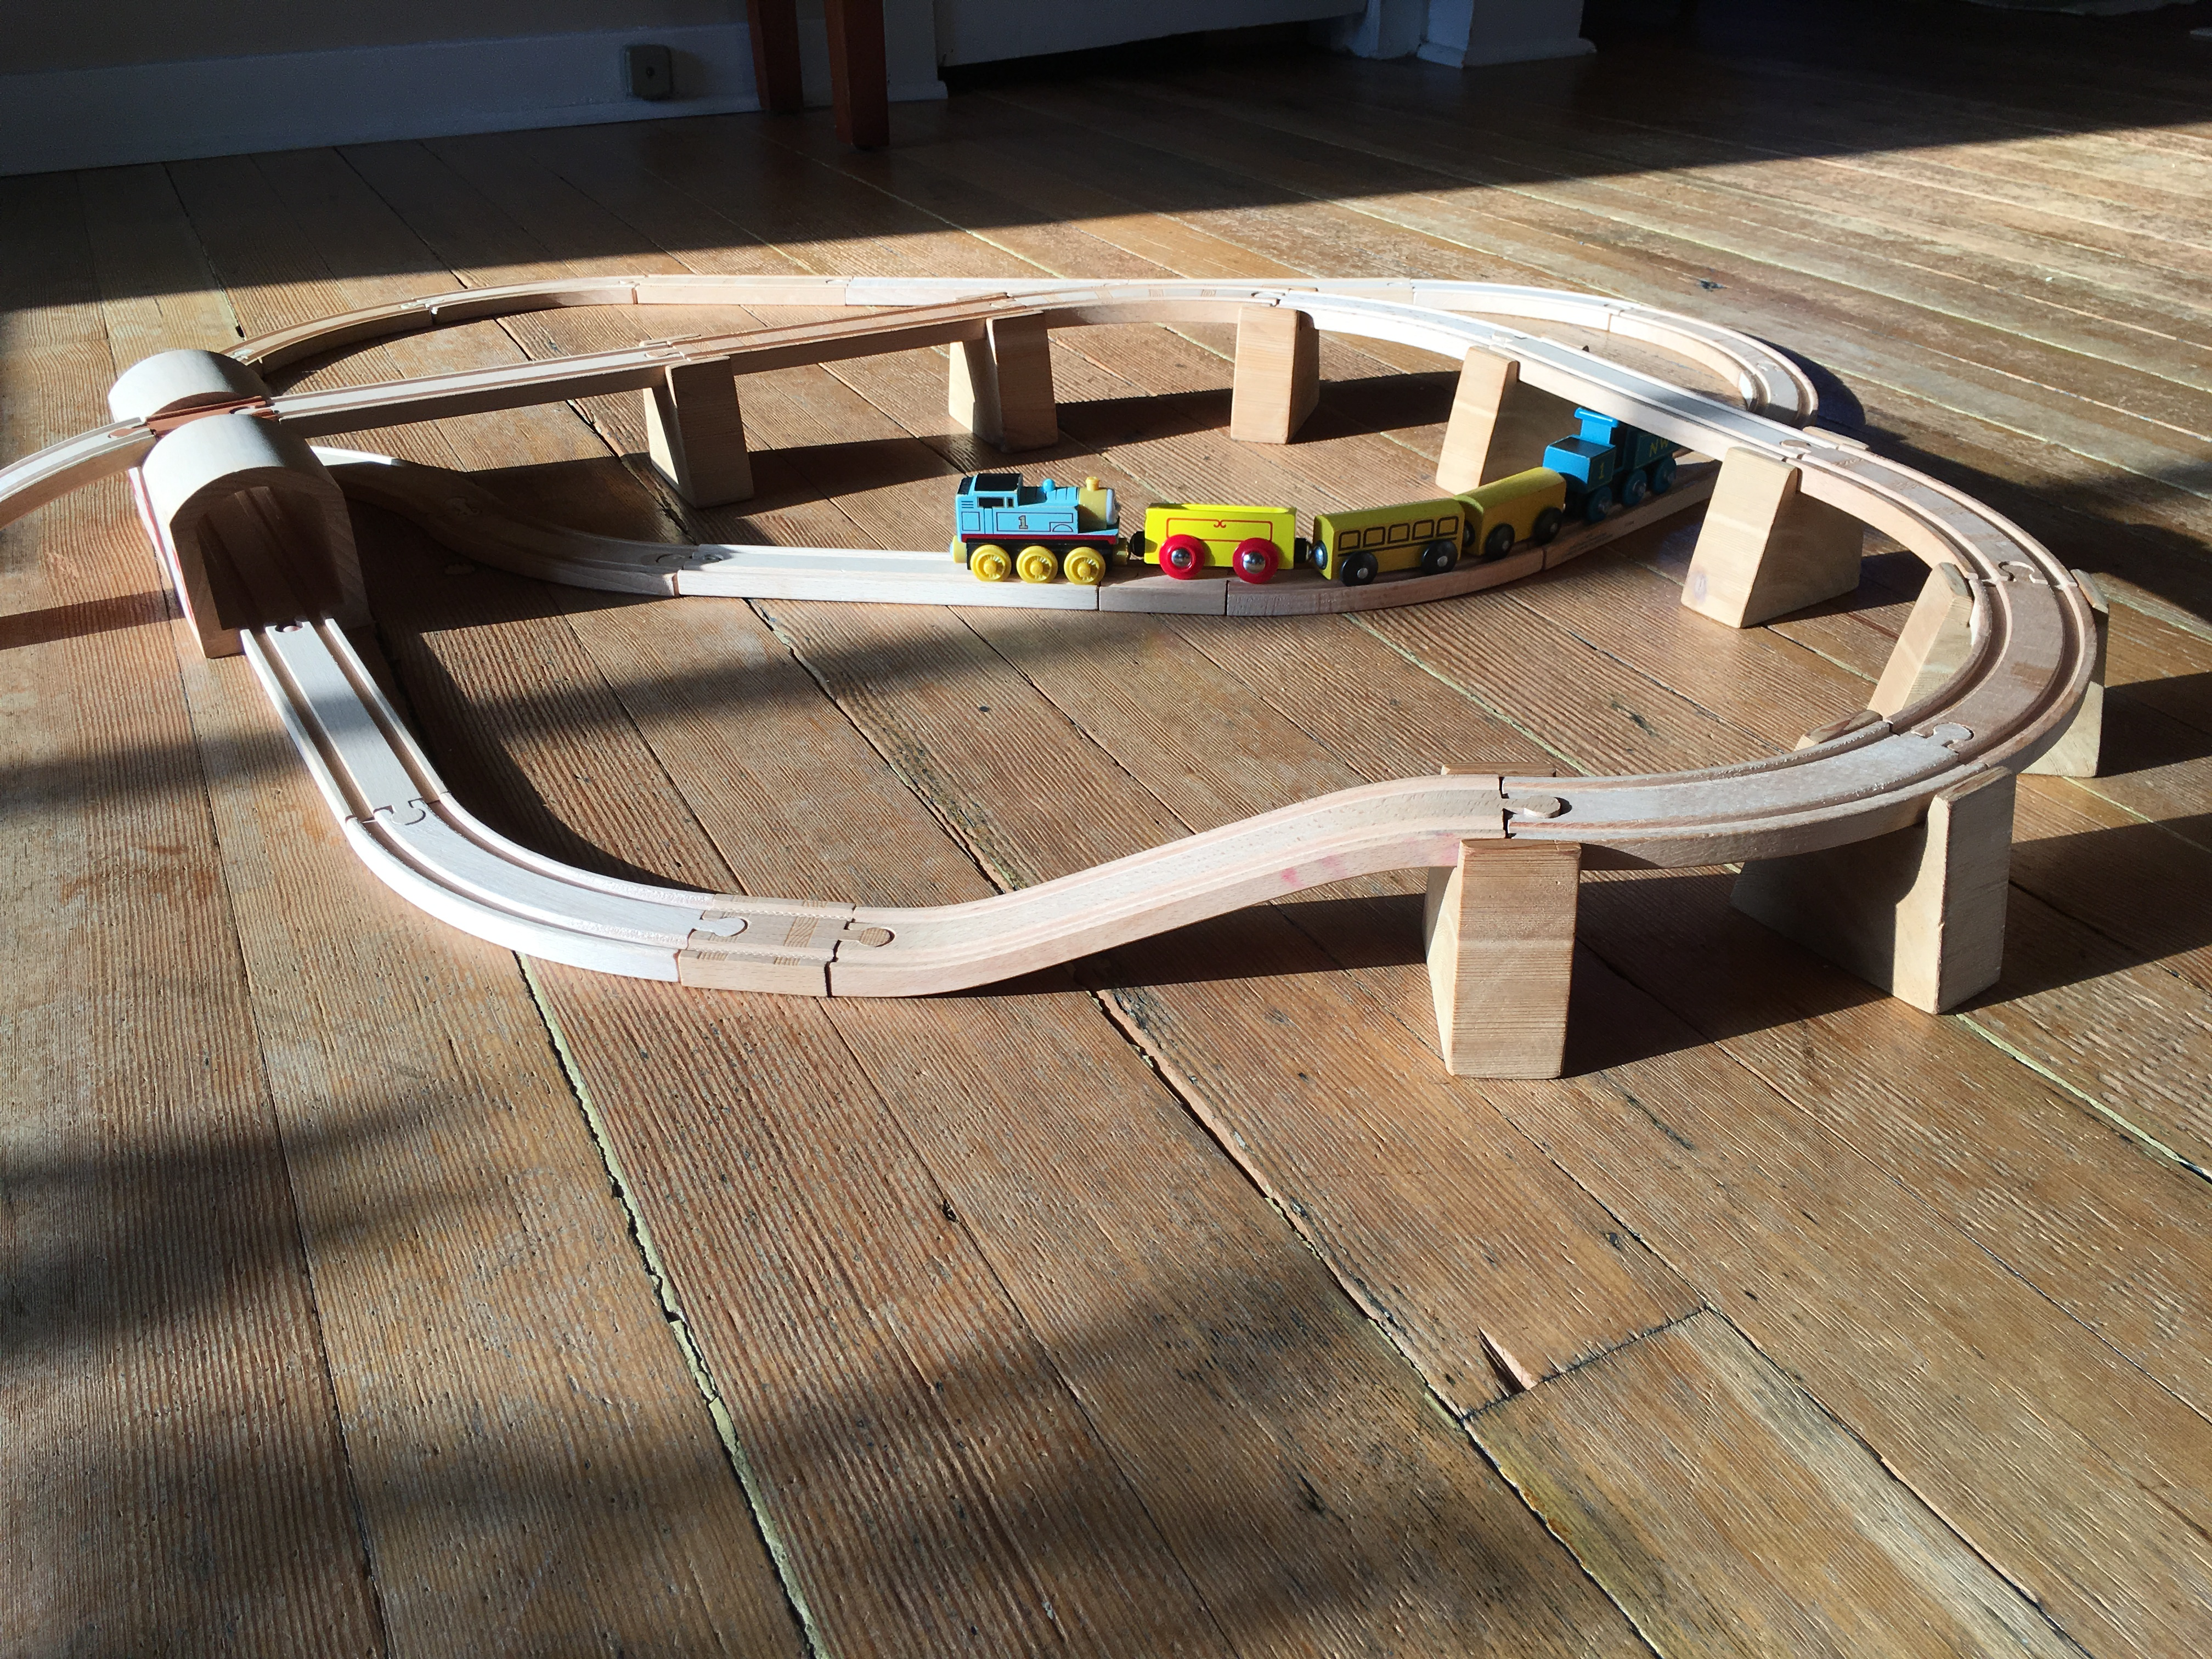 Diy Risers For Wooden Train Sets Jeremy Wadsack